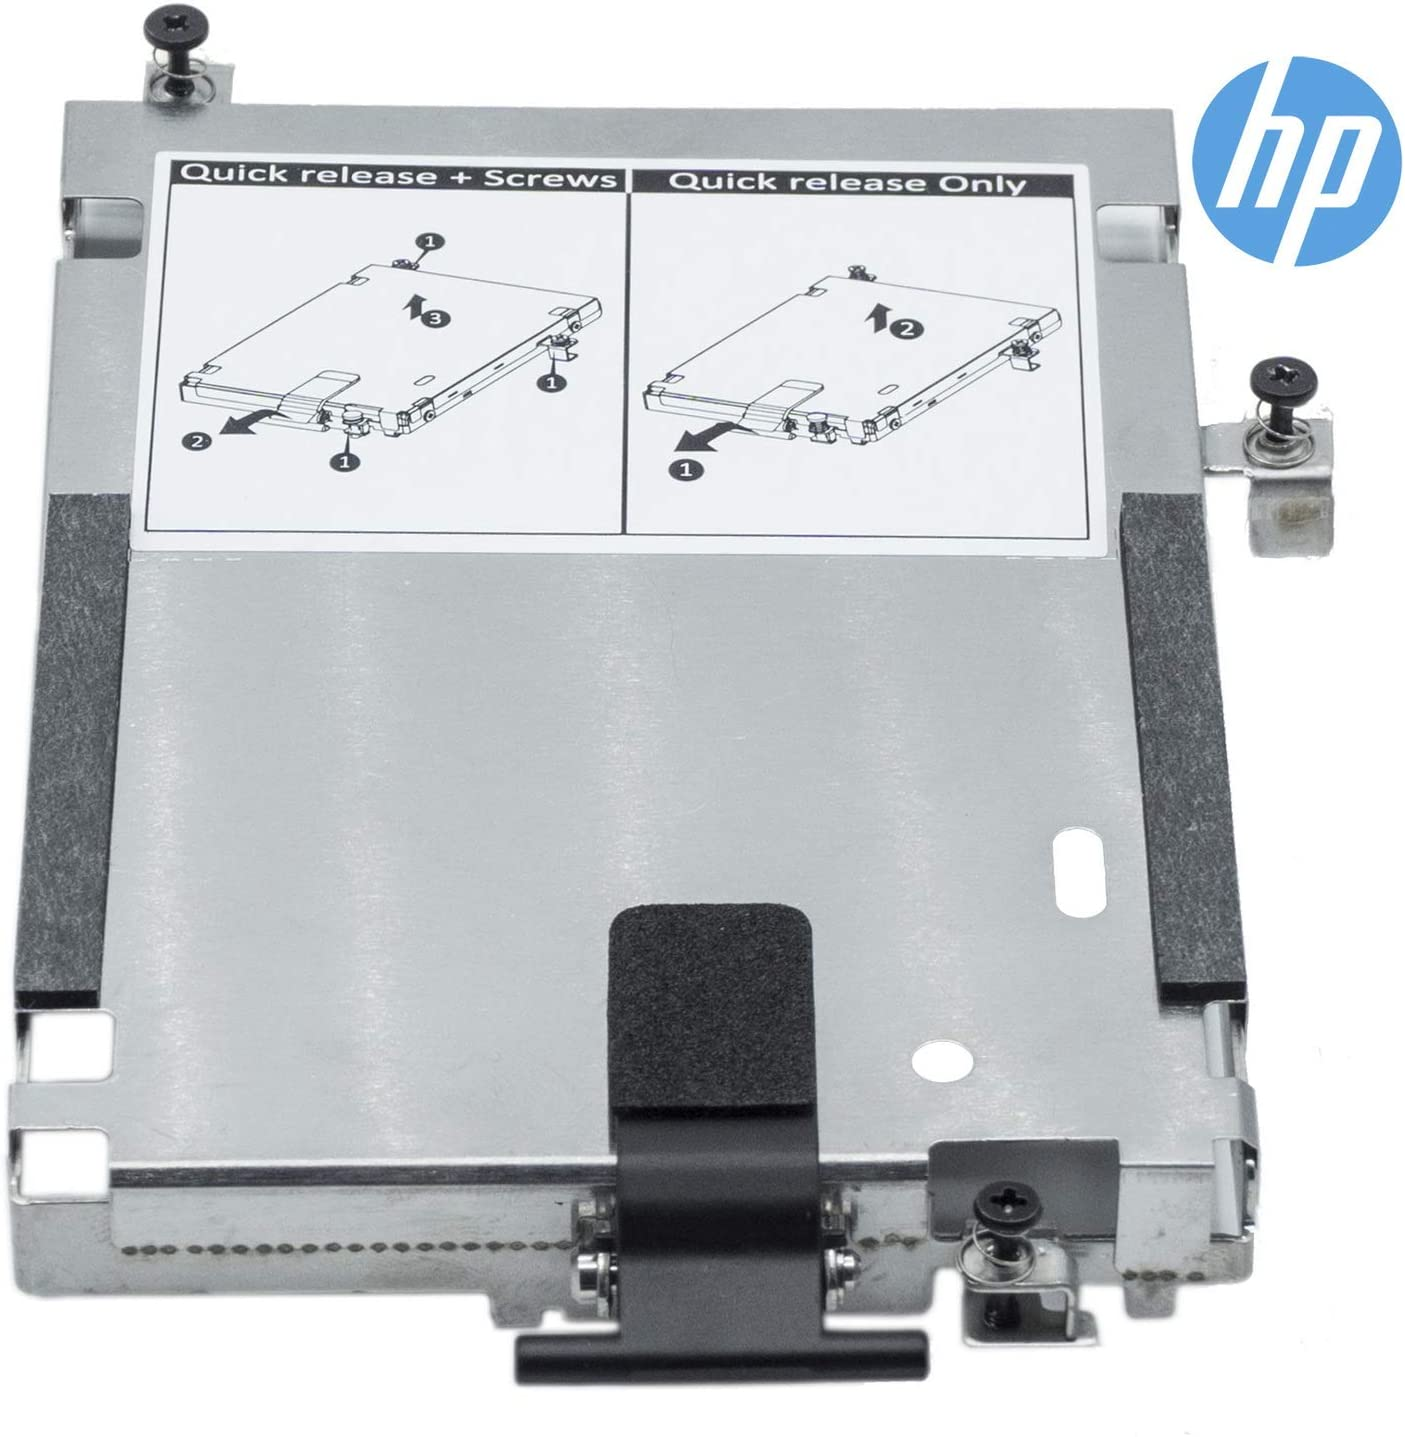 GENUINE Hard Drive HDD Caddy Bracket for HP ZBOOK 15 ZBOOK 17 US